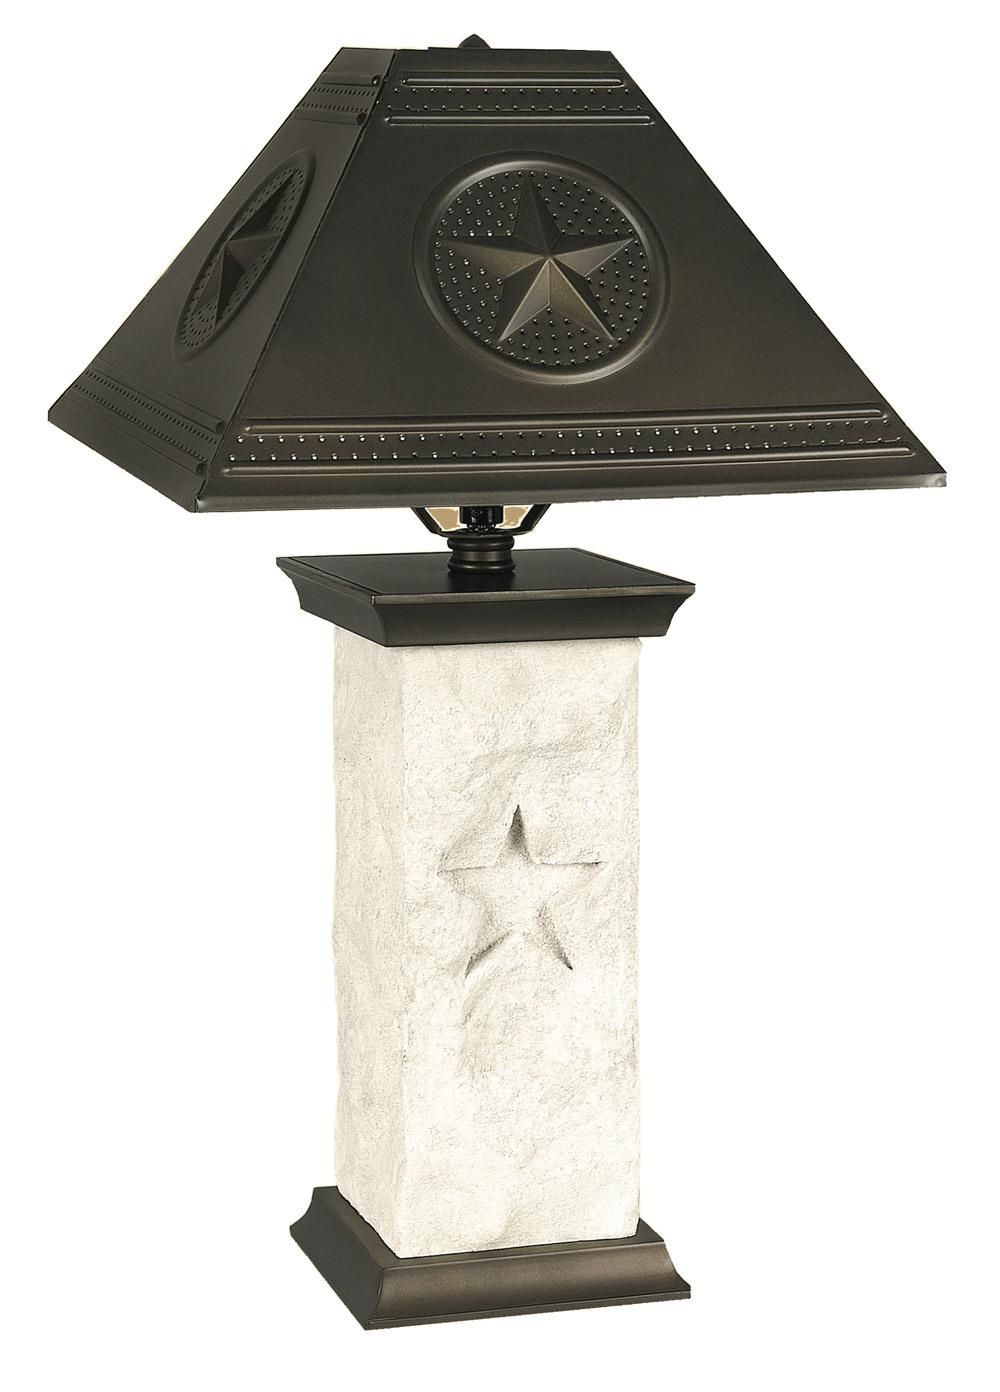 Rustic Texas Star Lighting Click On Photo To Zoom Click Outside Of Photo To Reset To Normal Zoom Rustic Star Star Lamp Rustic Trestle Dining Table